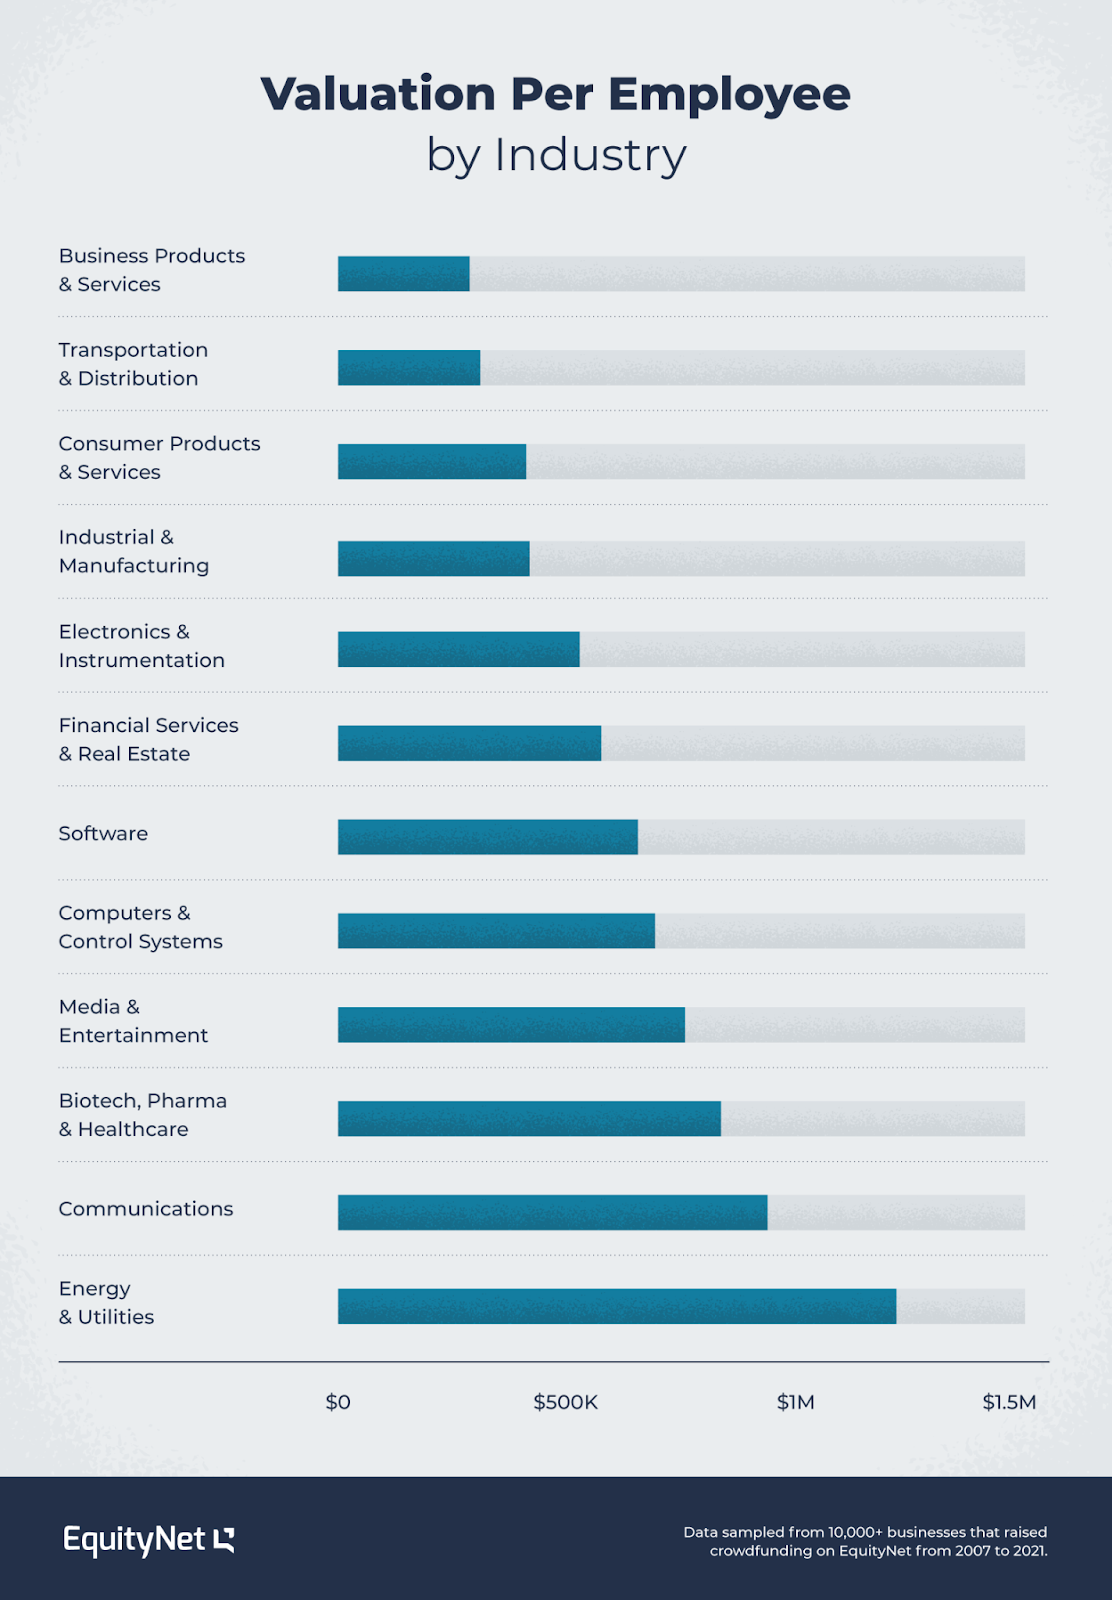 valuation per employee by industry in privately held crowdfunded businesses